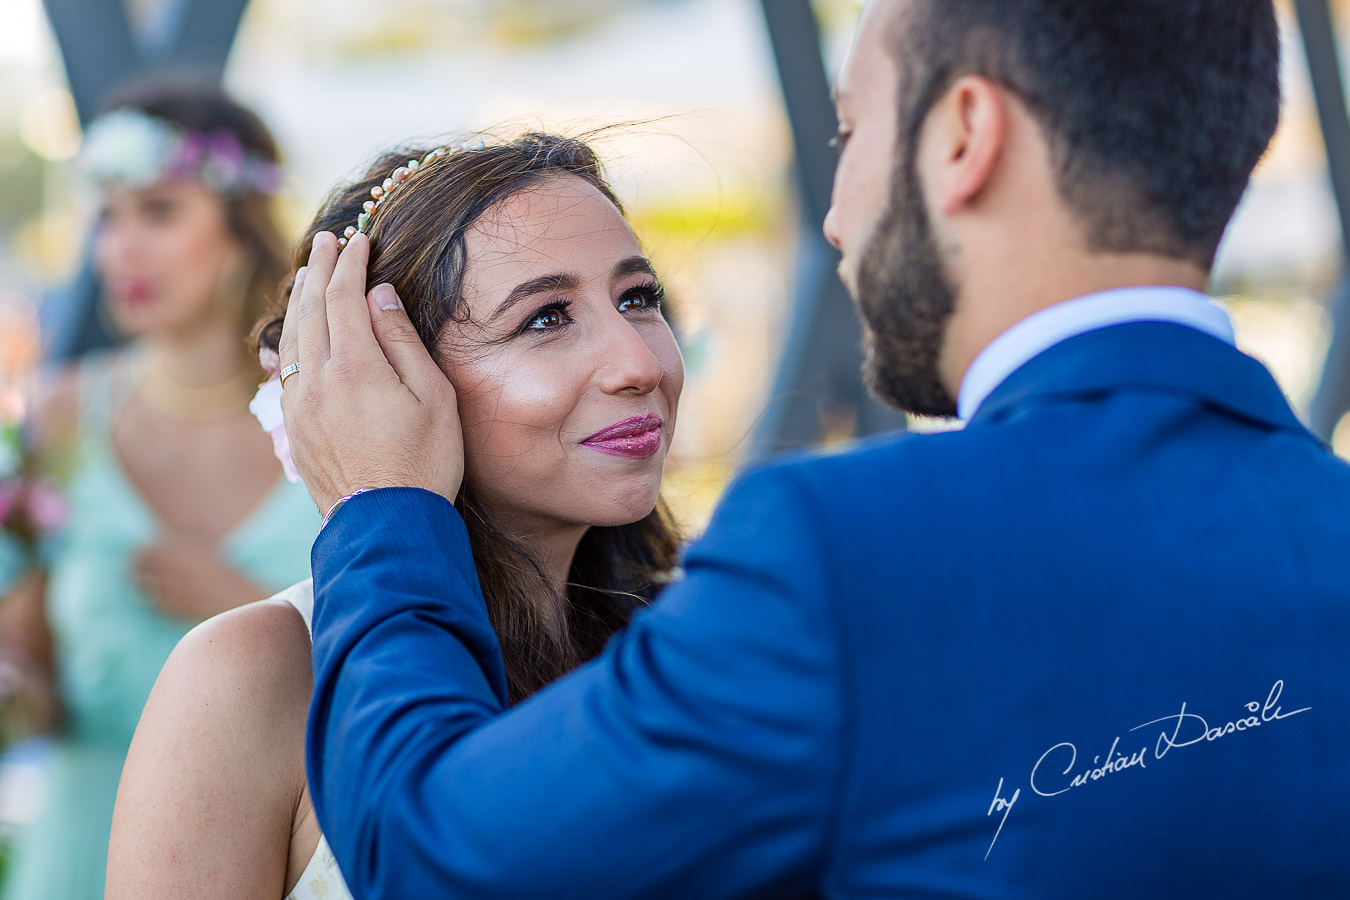 Unique gentle moments with the bride and groom during the ceremony, as part of an Exclusive Wedding photography at Grand Resort Limassol, captured by Cyprus Wedding Photographer Cristian Dascalu.